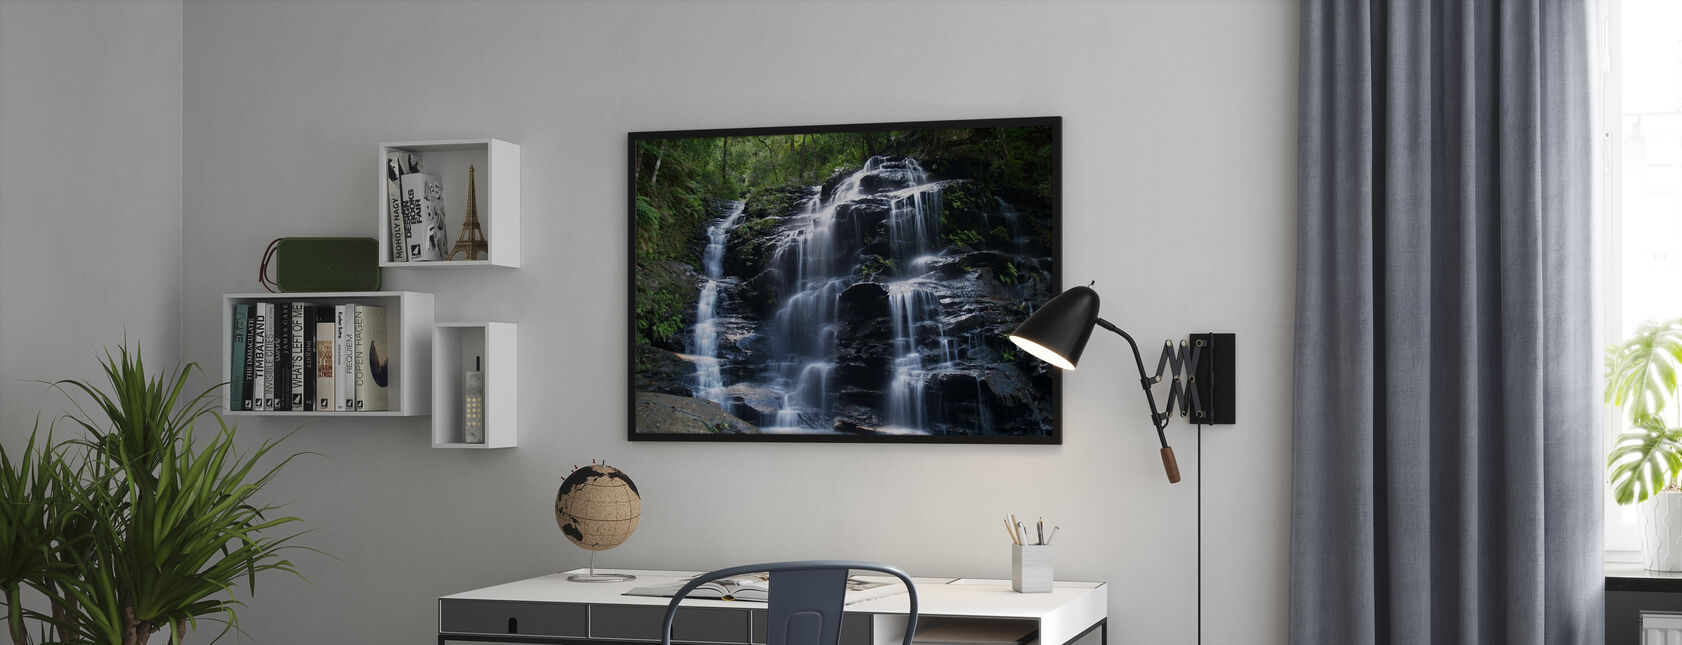 Amazon Waterfall - Framed print - Office